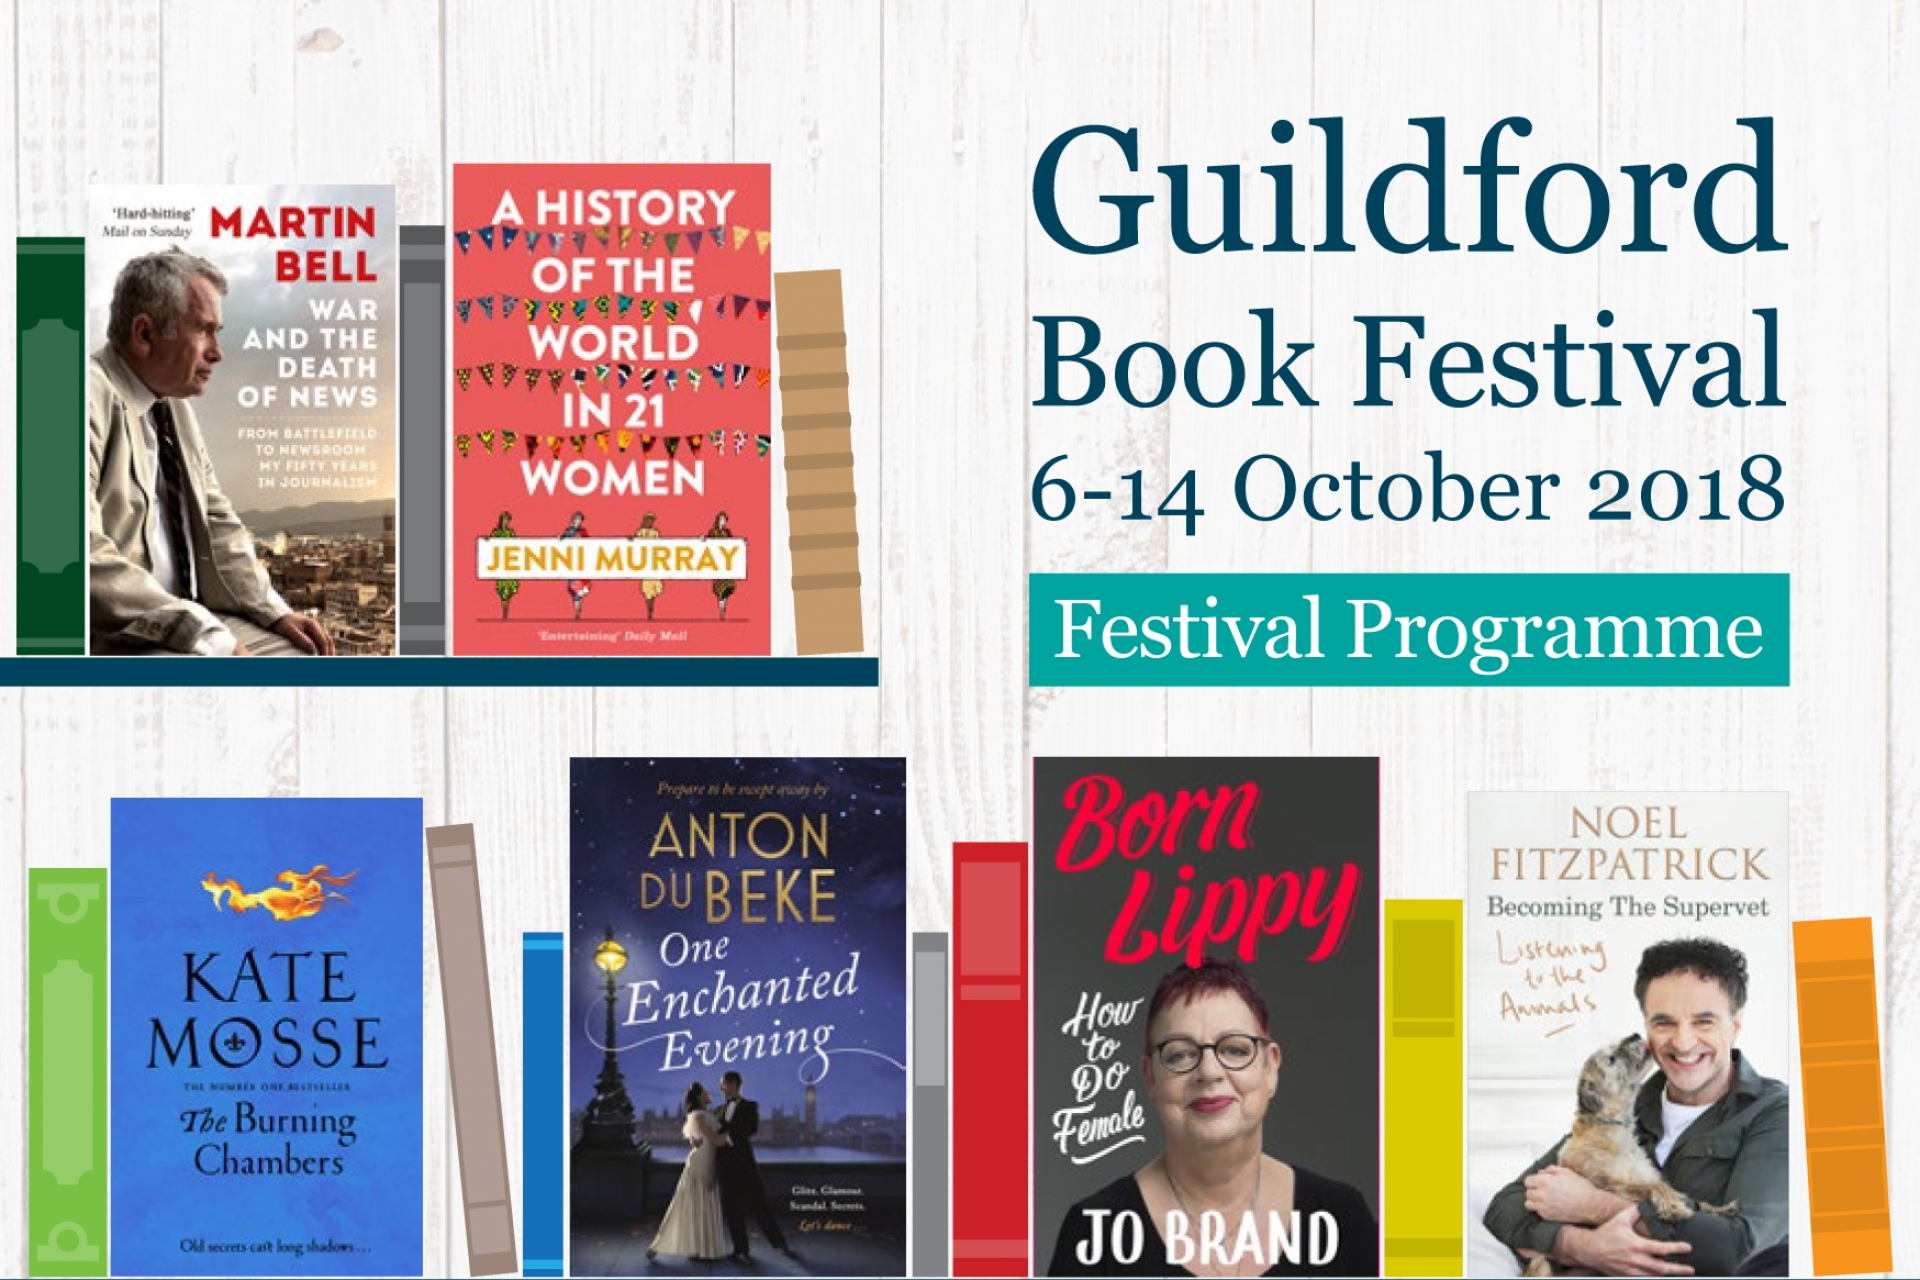 Guildford Book Festival Readers' Day - Saturday 13 October